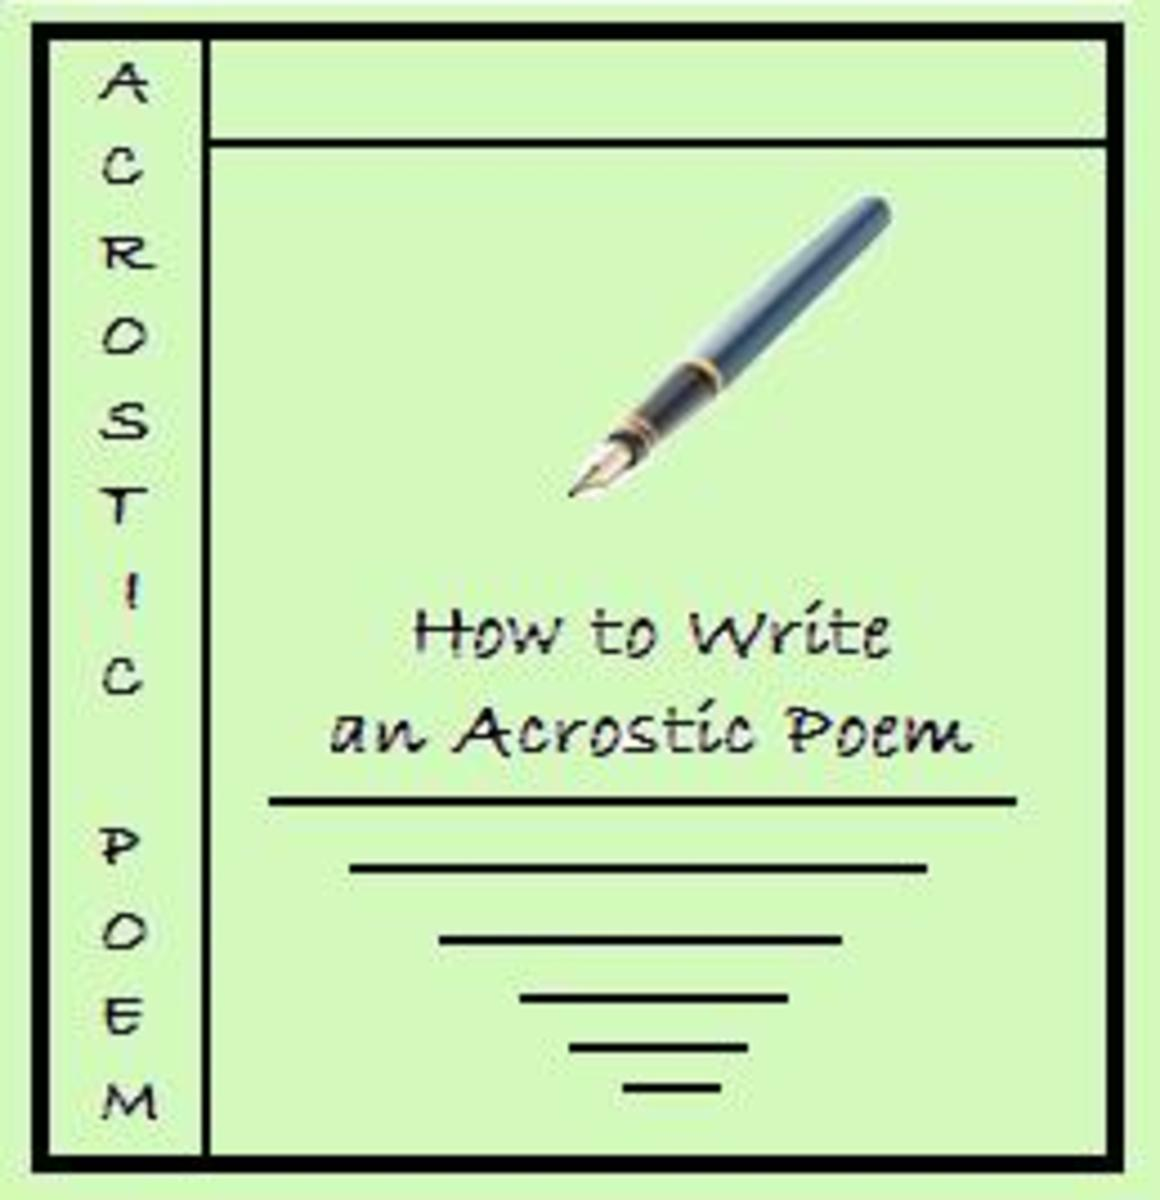 How to Write an Acrostic Poem?